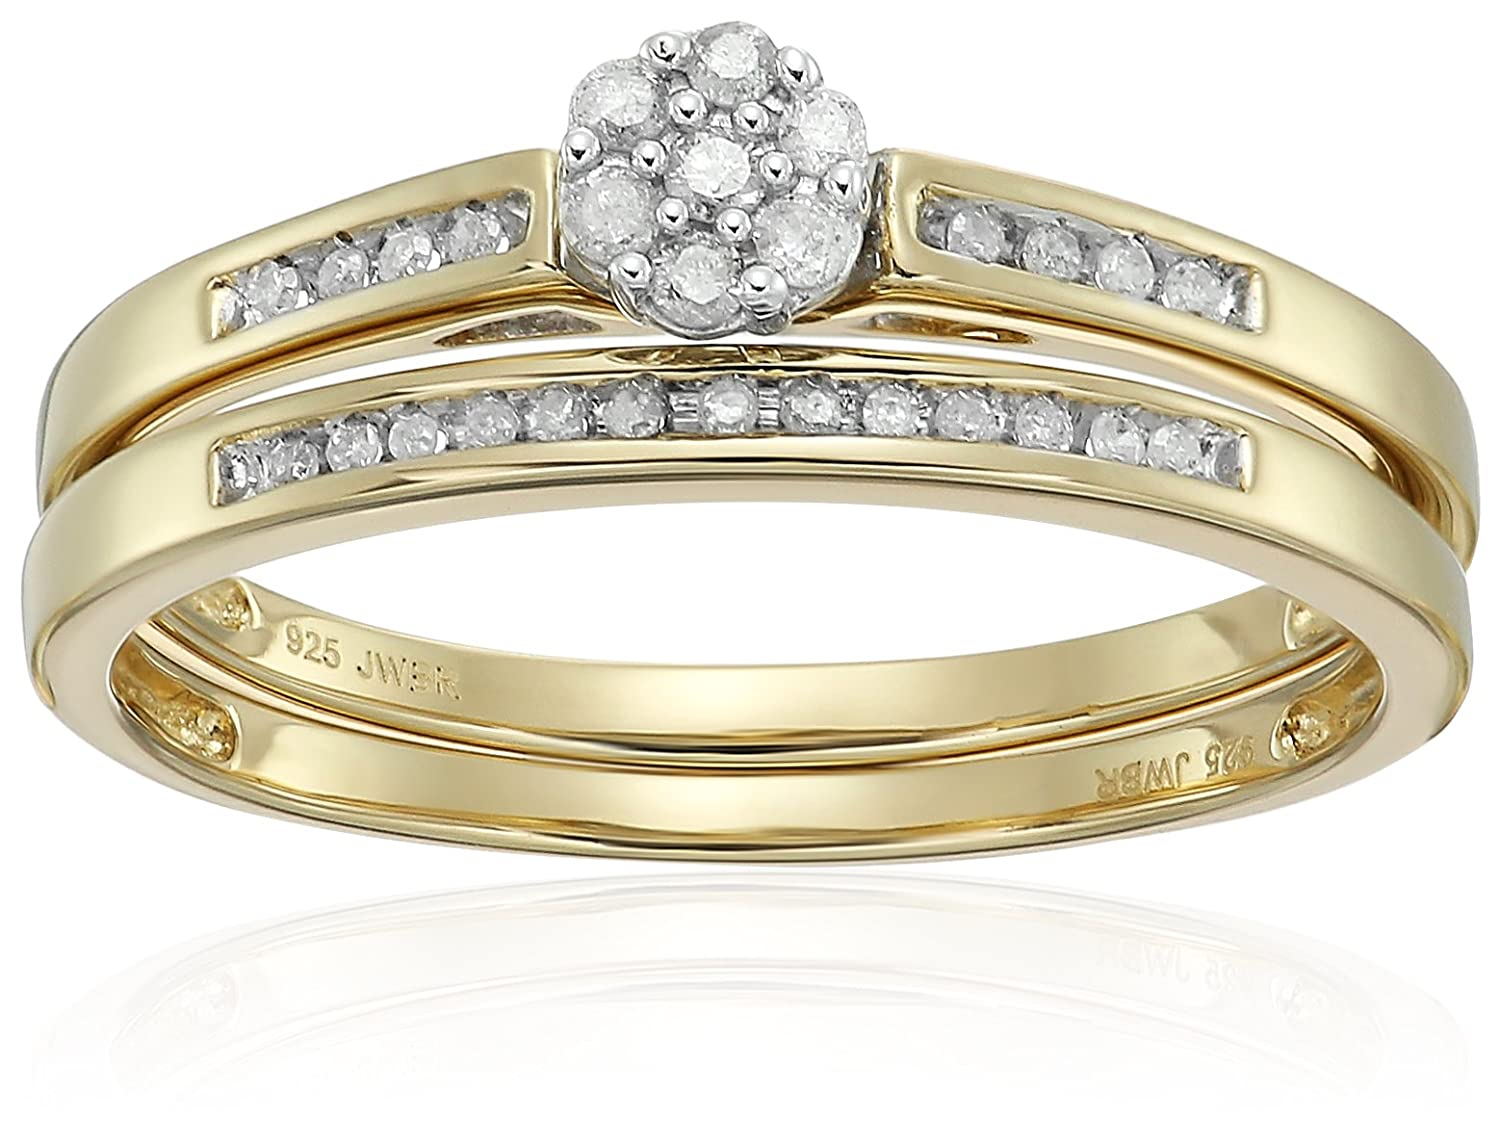 18k Yellow Gold over Silver Diamond Round Cluster Bridal Ring, Size 7 Amazon Collection 956451D/STGSIL/Y/HR/US7